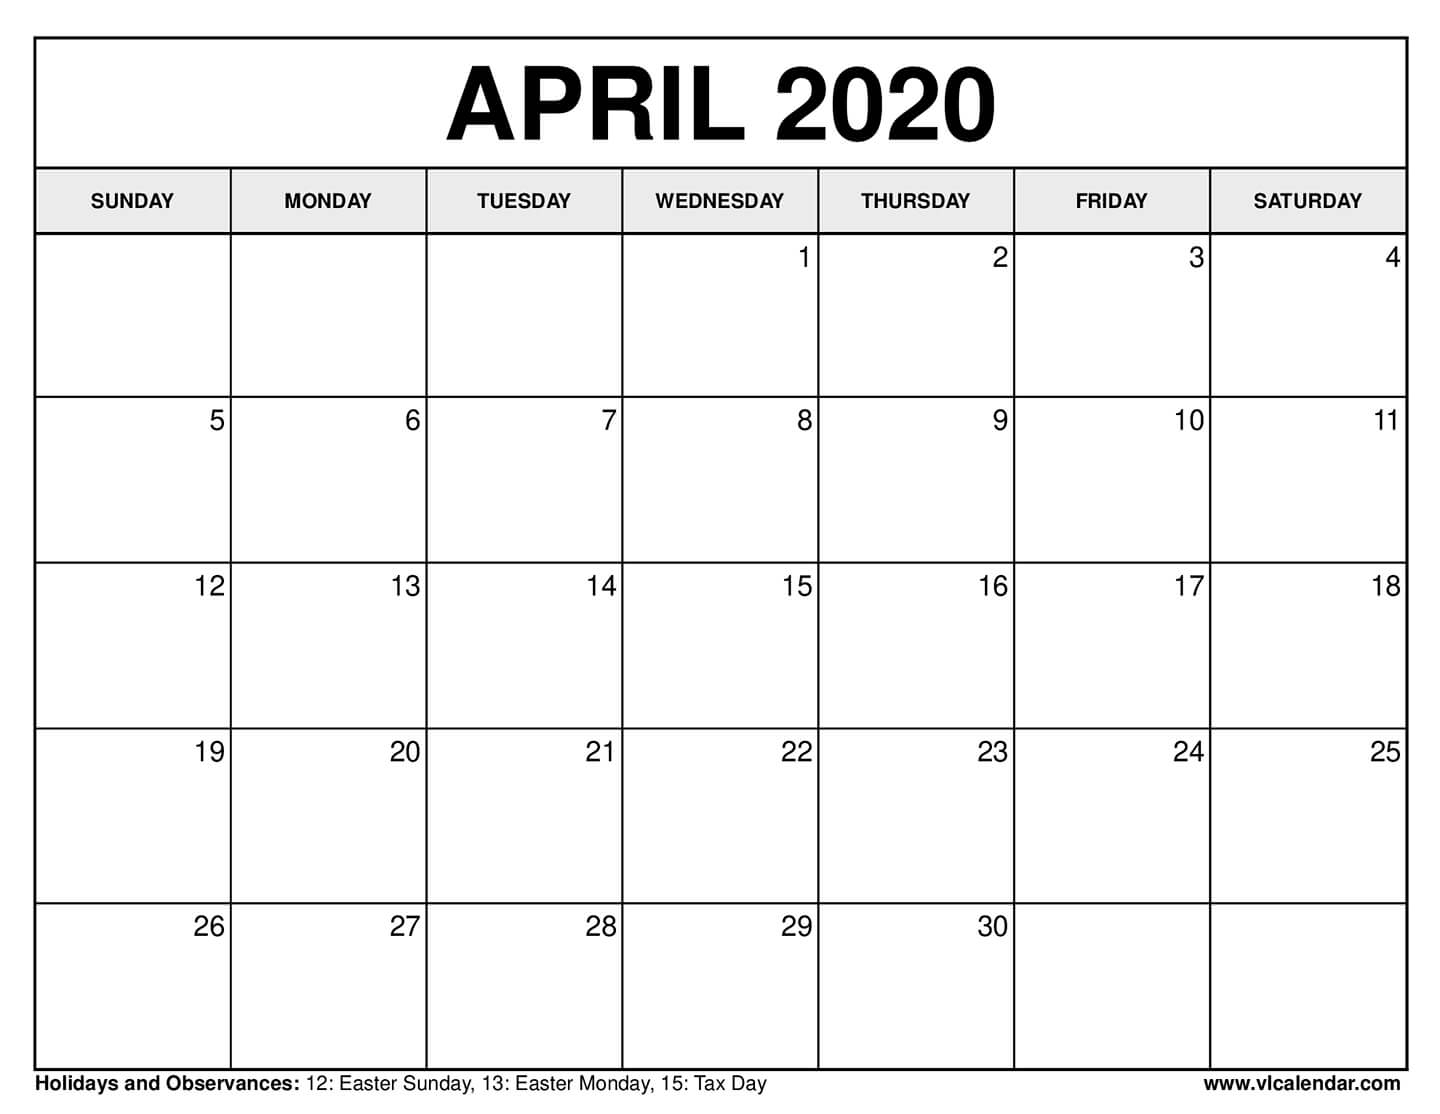 Free Printable Calendar For April 2020 within Free Printable April 2020 Calendar